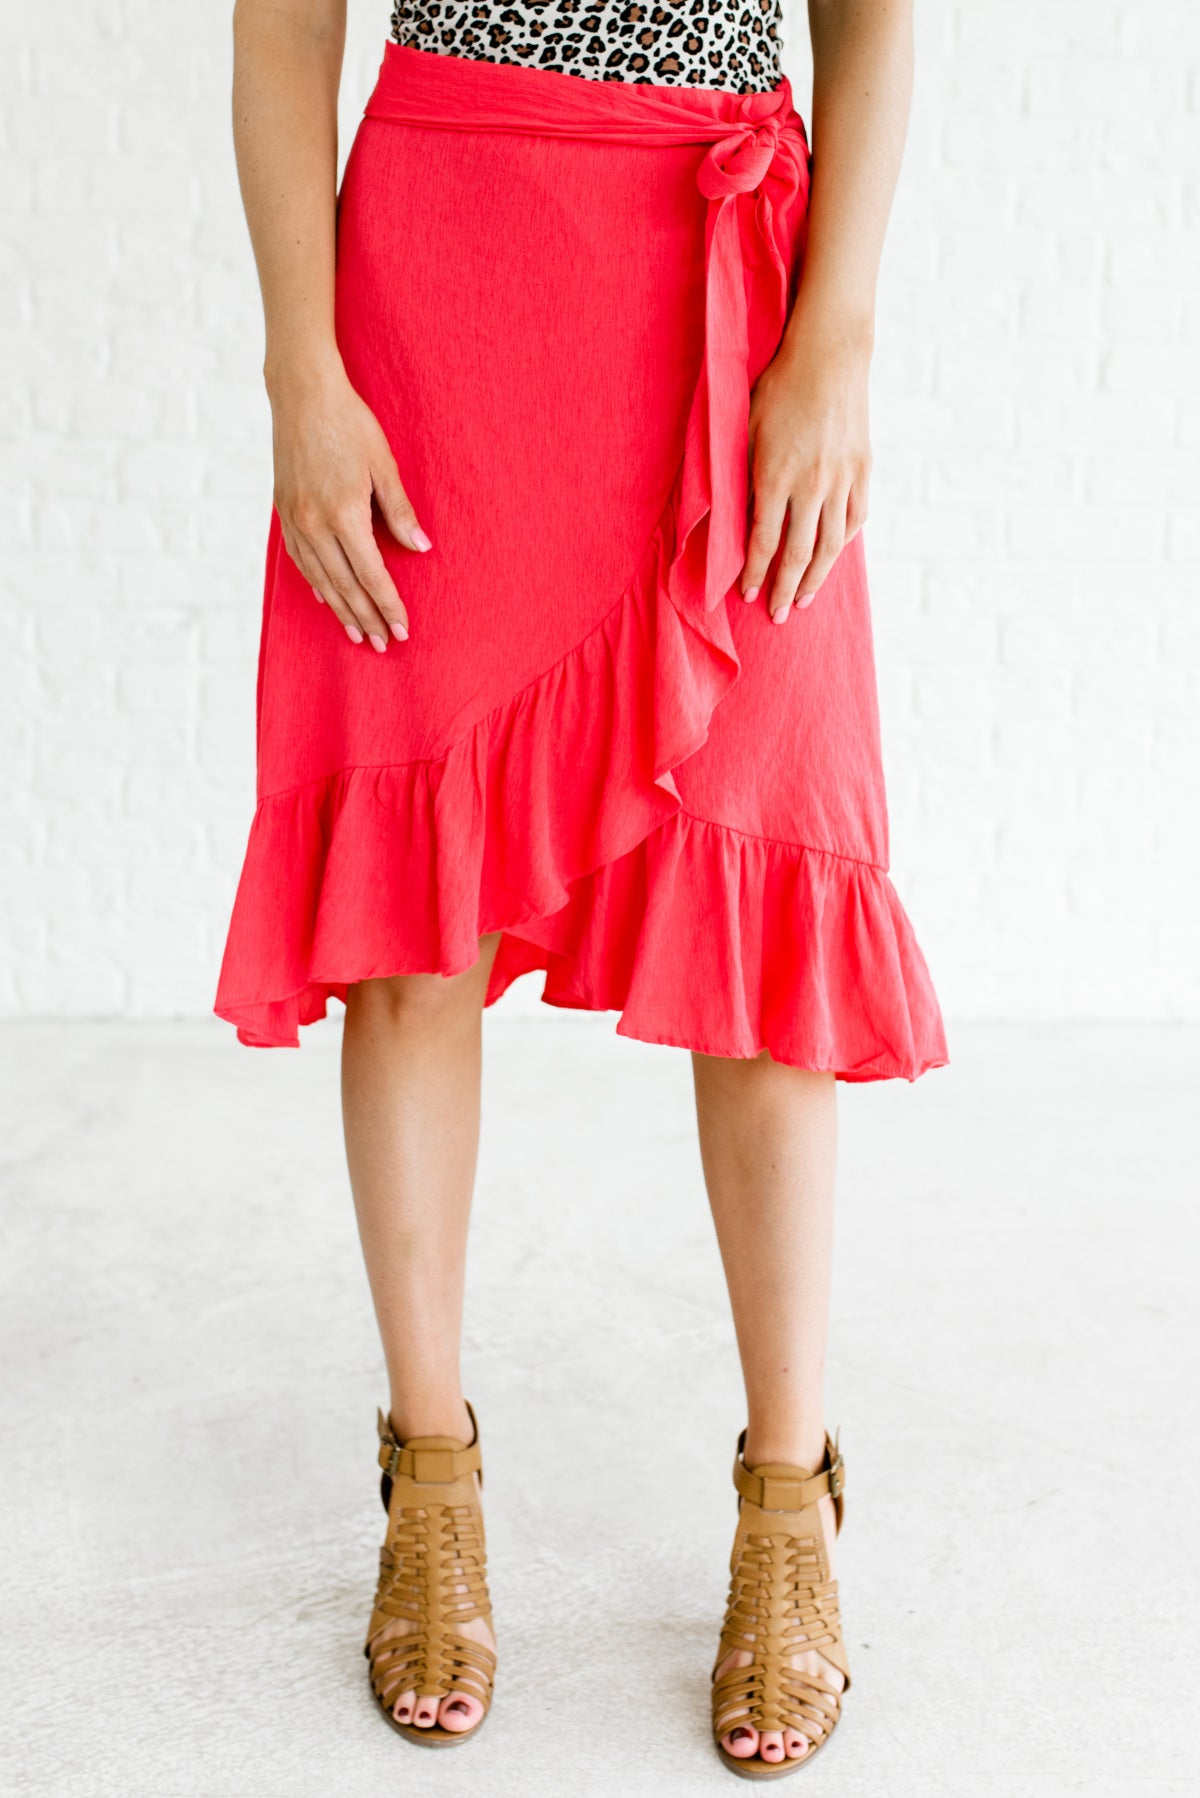 Hot Pink Faux Wrap Style Boutique Knee-Length Skirts for Women